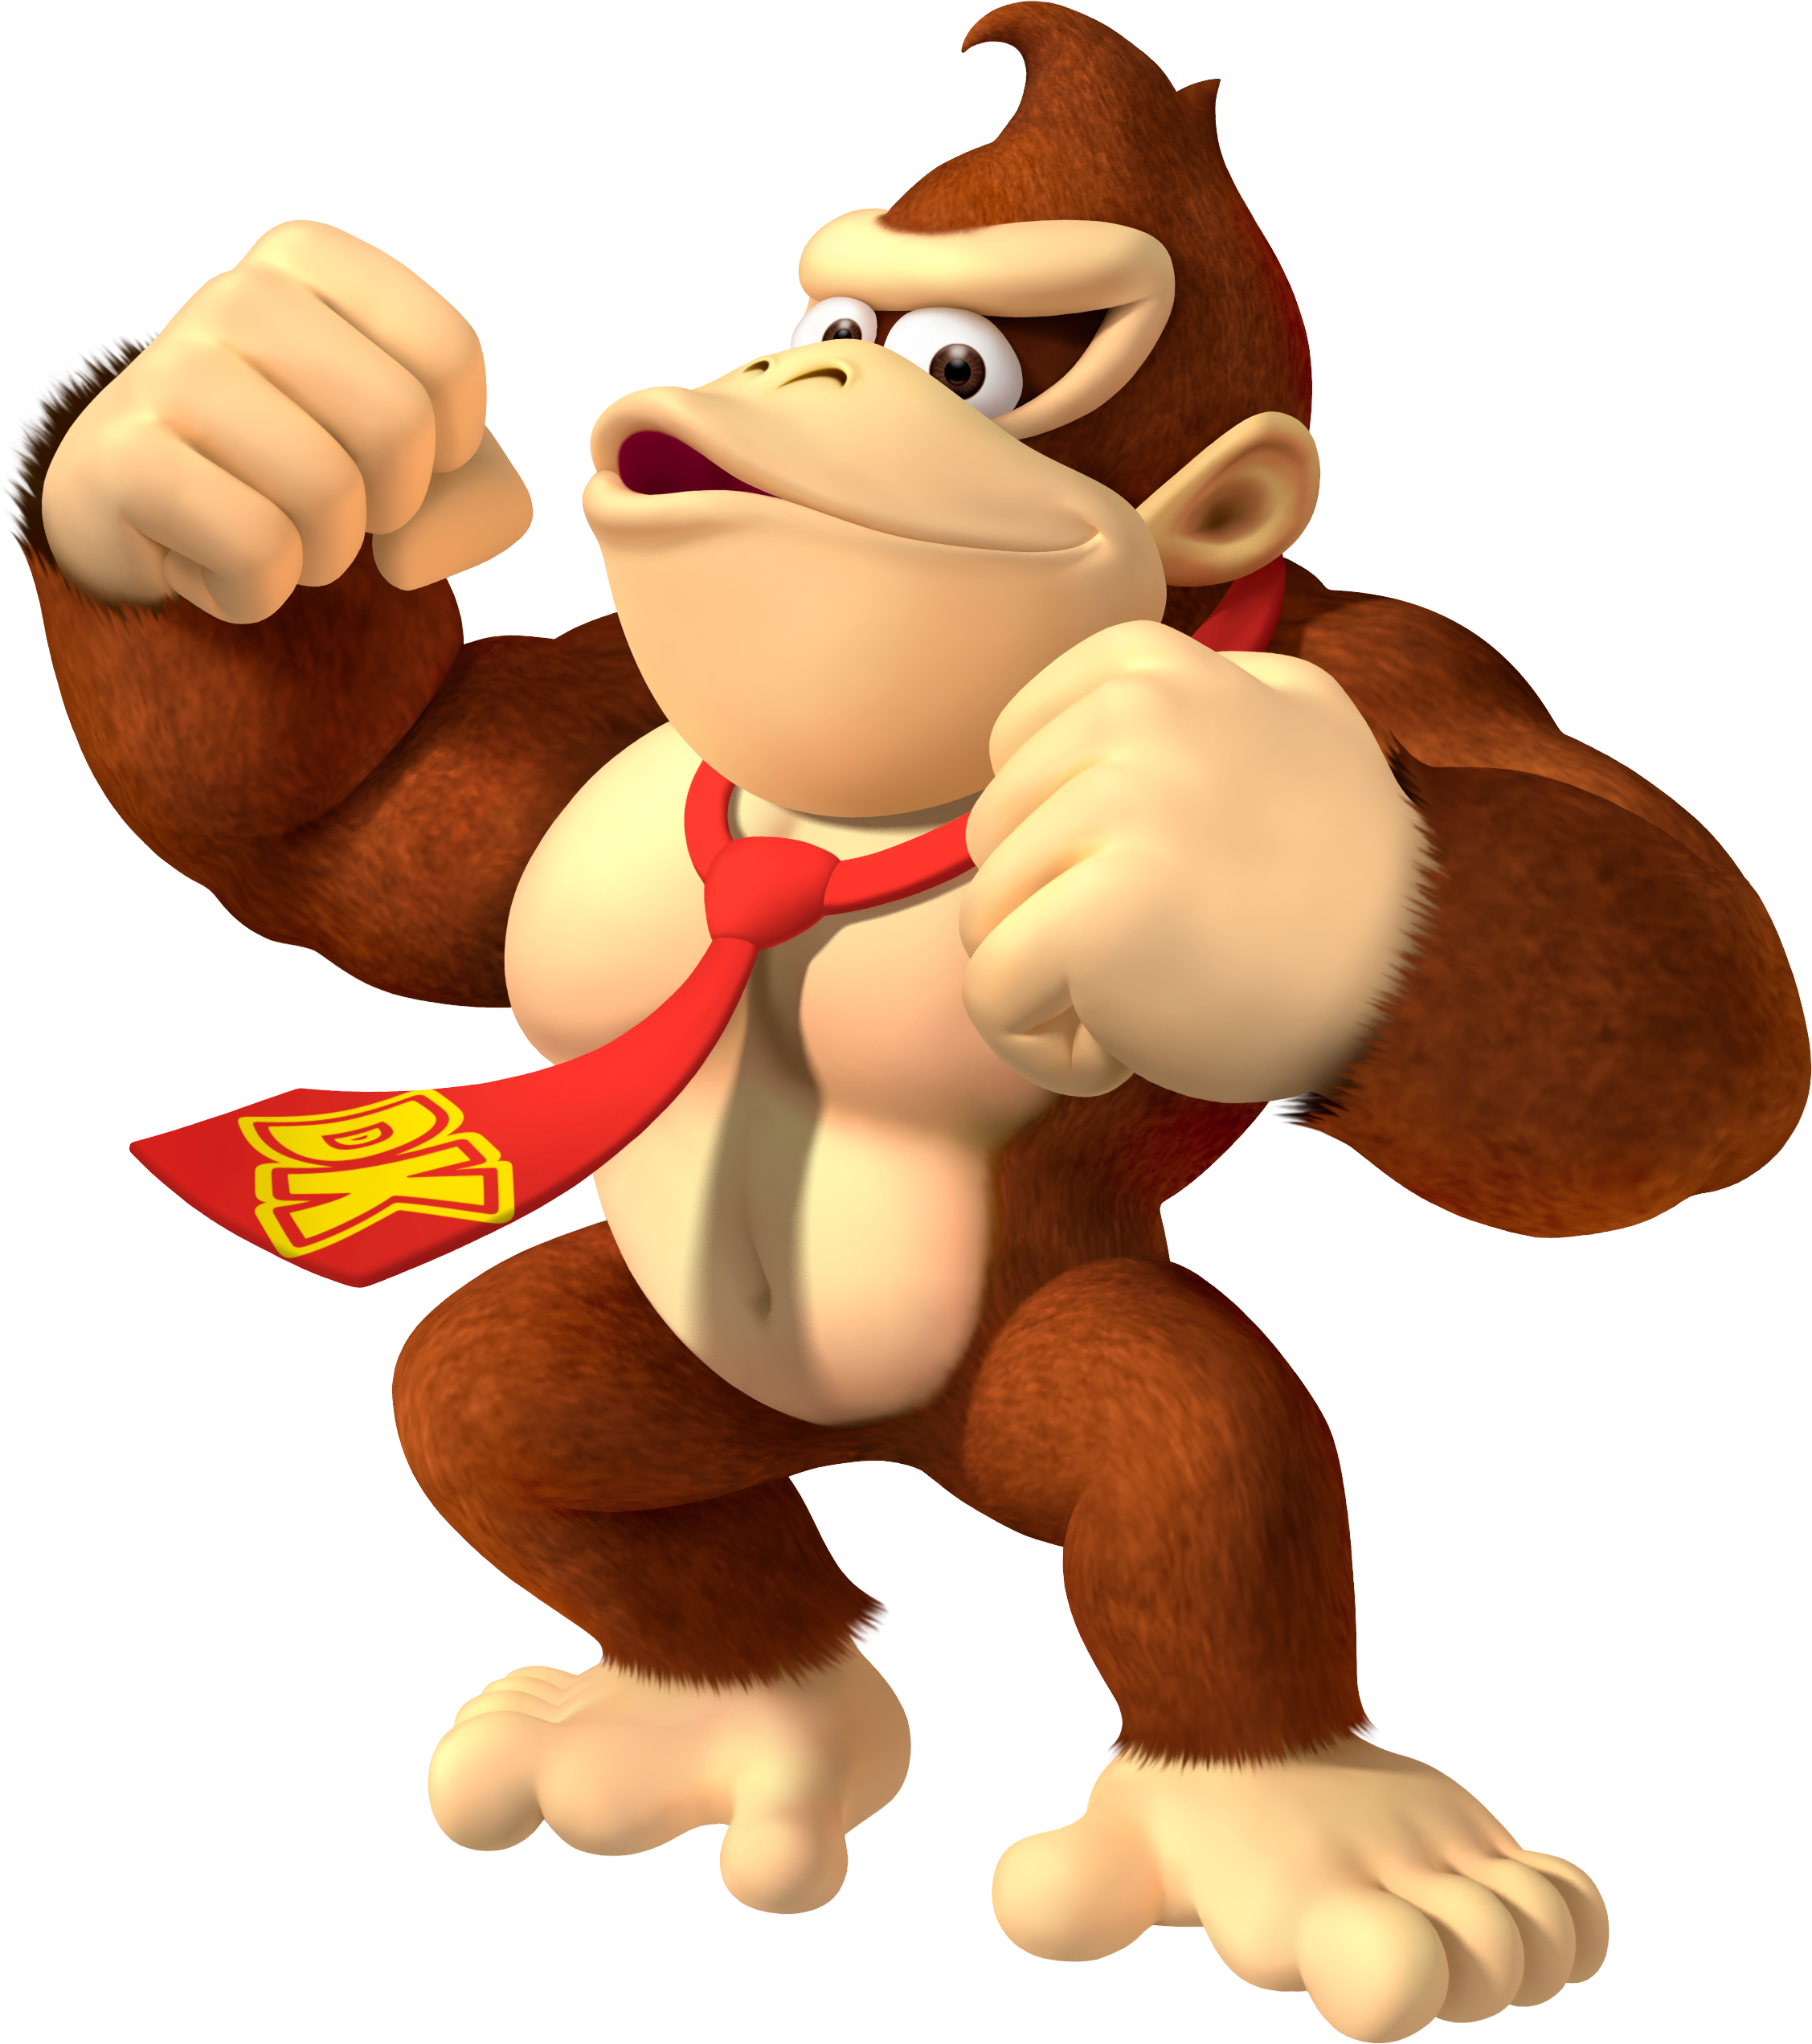 Donkey kong tie png. Character scratchpad fandom powered